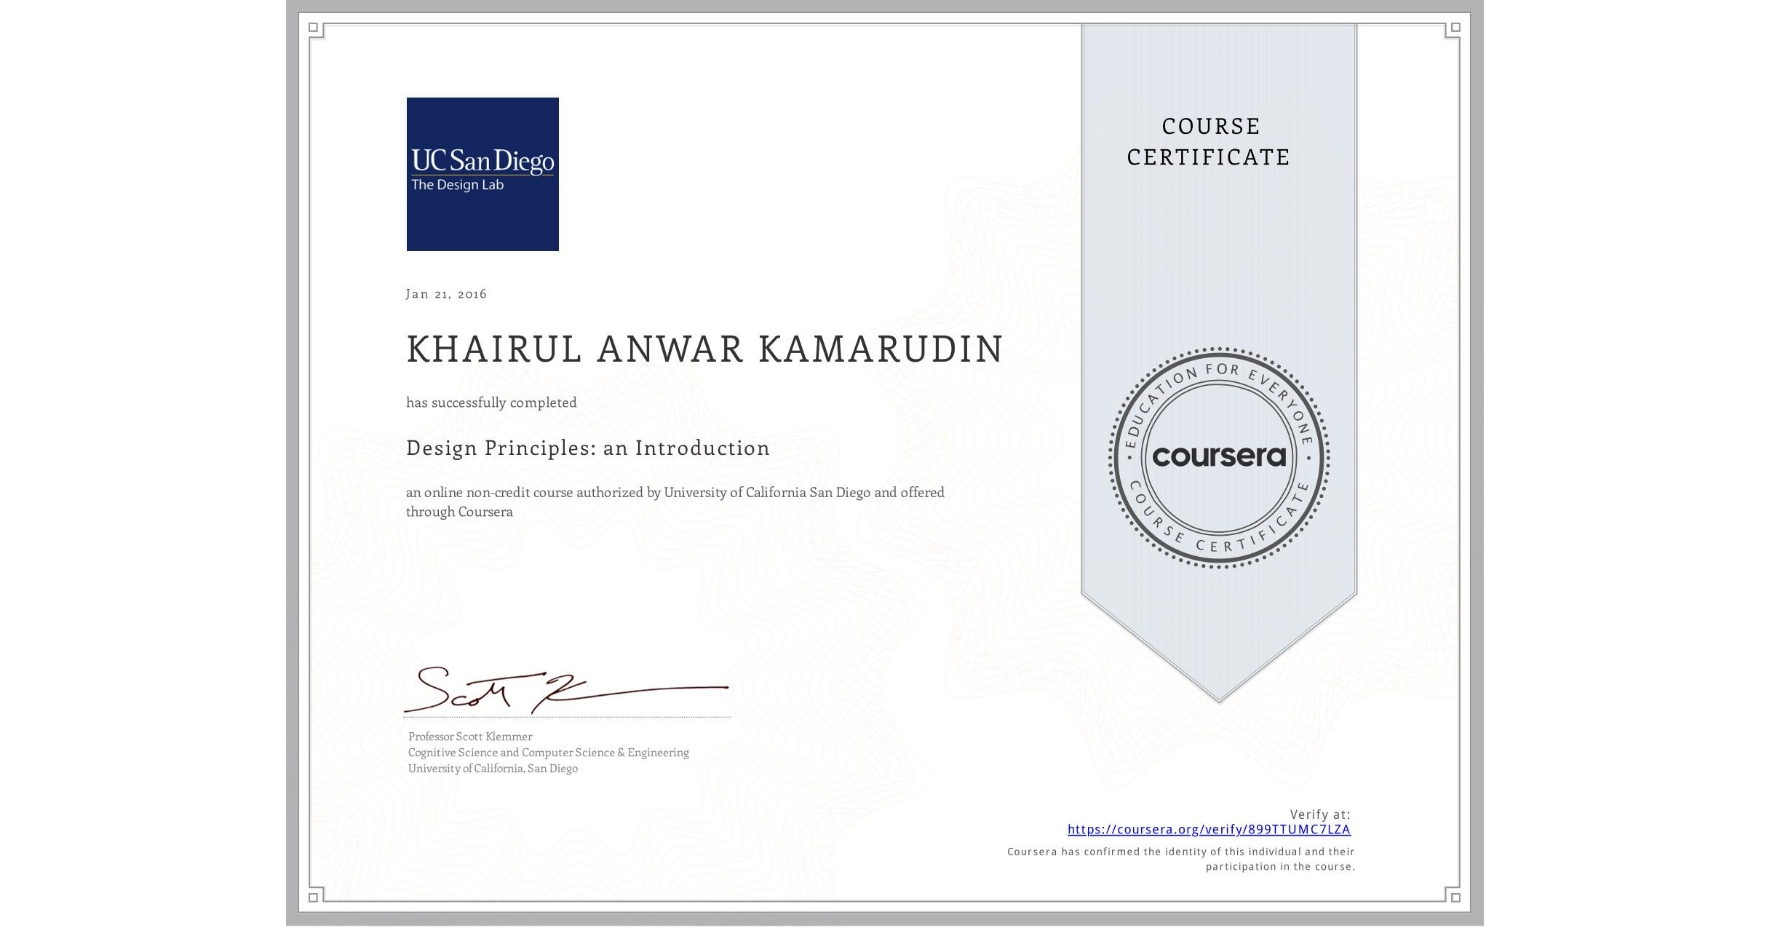 View certificate for KHAIRUL ANWAR  KAMARUDIN, Design Principles: an Introduction, an online non-credit course authorized by University of California San Diego and offered through Coursera